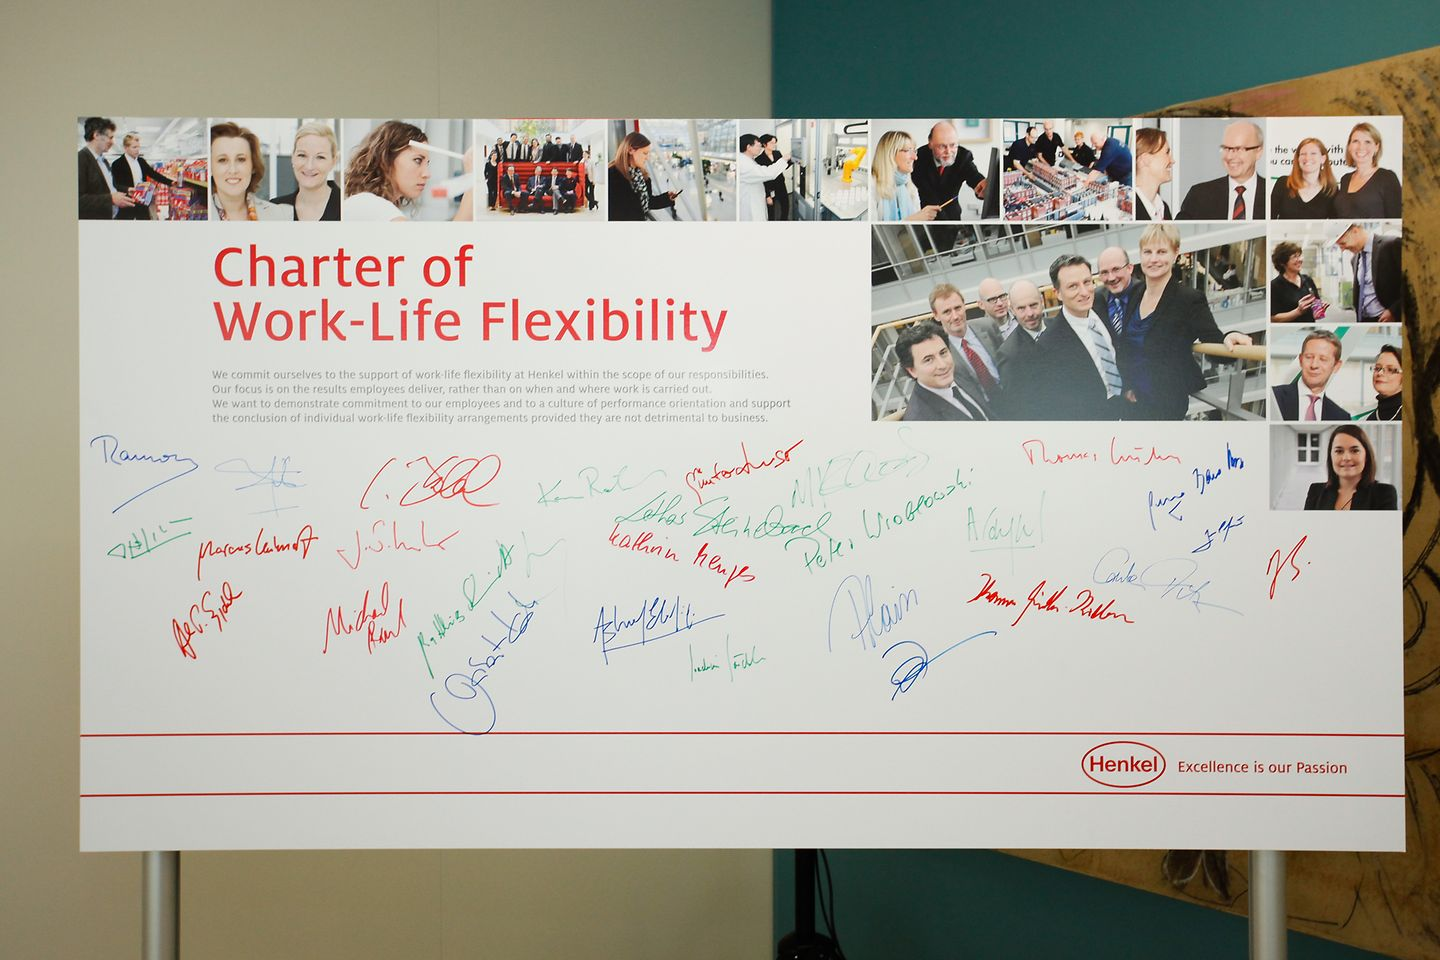 Signes work-life-flexibility charter